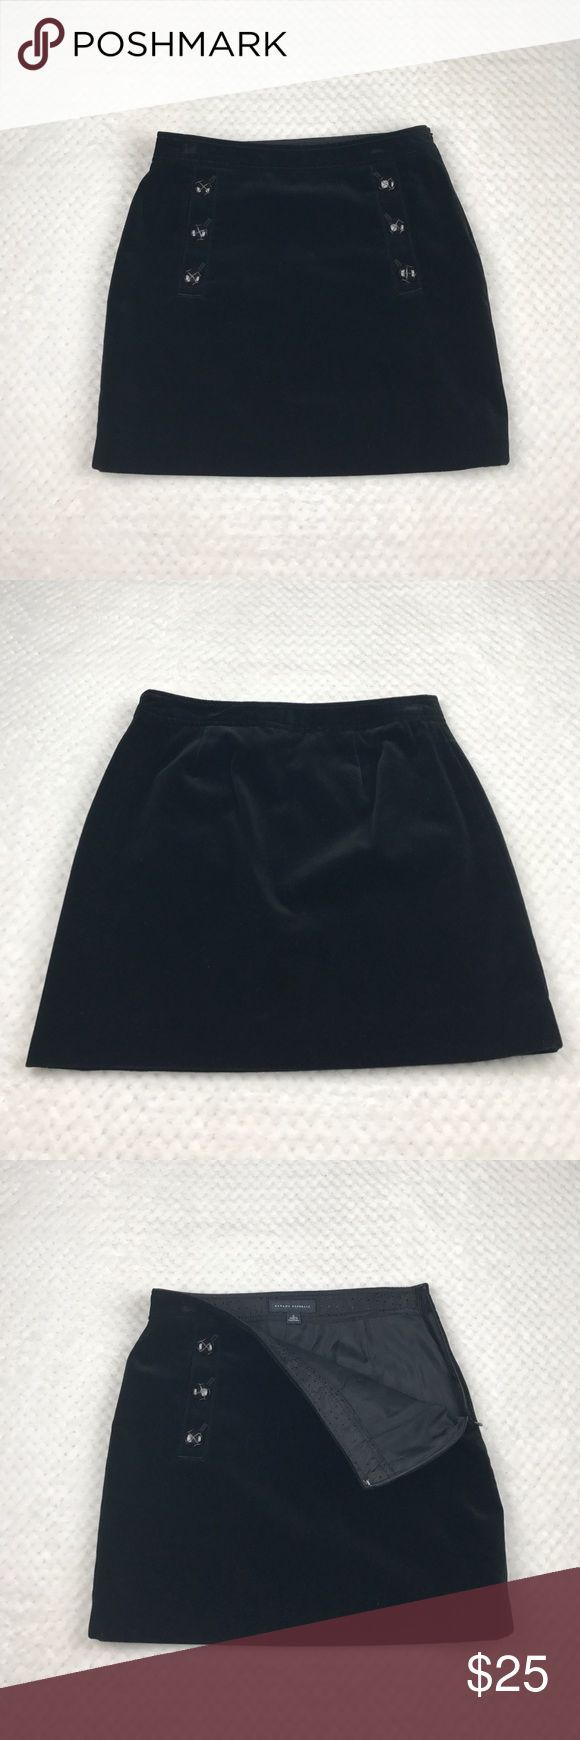 Banana Republic Mini Velour Skirt - Size 0 Black mini skirt from BR.  Size 0. Side zipper. Fully lined.  Functional pockets with decorative buttons.  Minor flaws:  hanger marks on waistband and loose stitch near zipper that is only visible when material is pulled apart. Banana Republic Skirts Mini